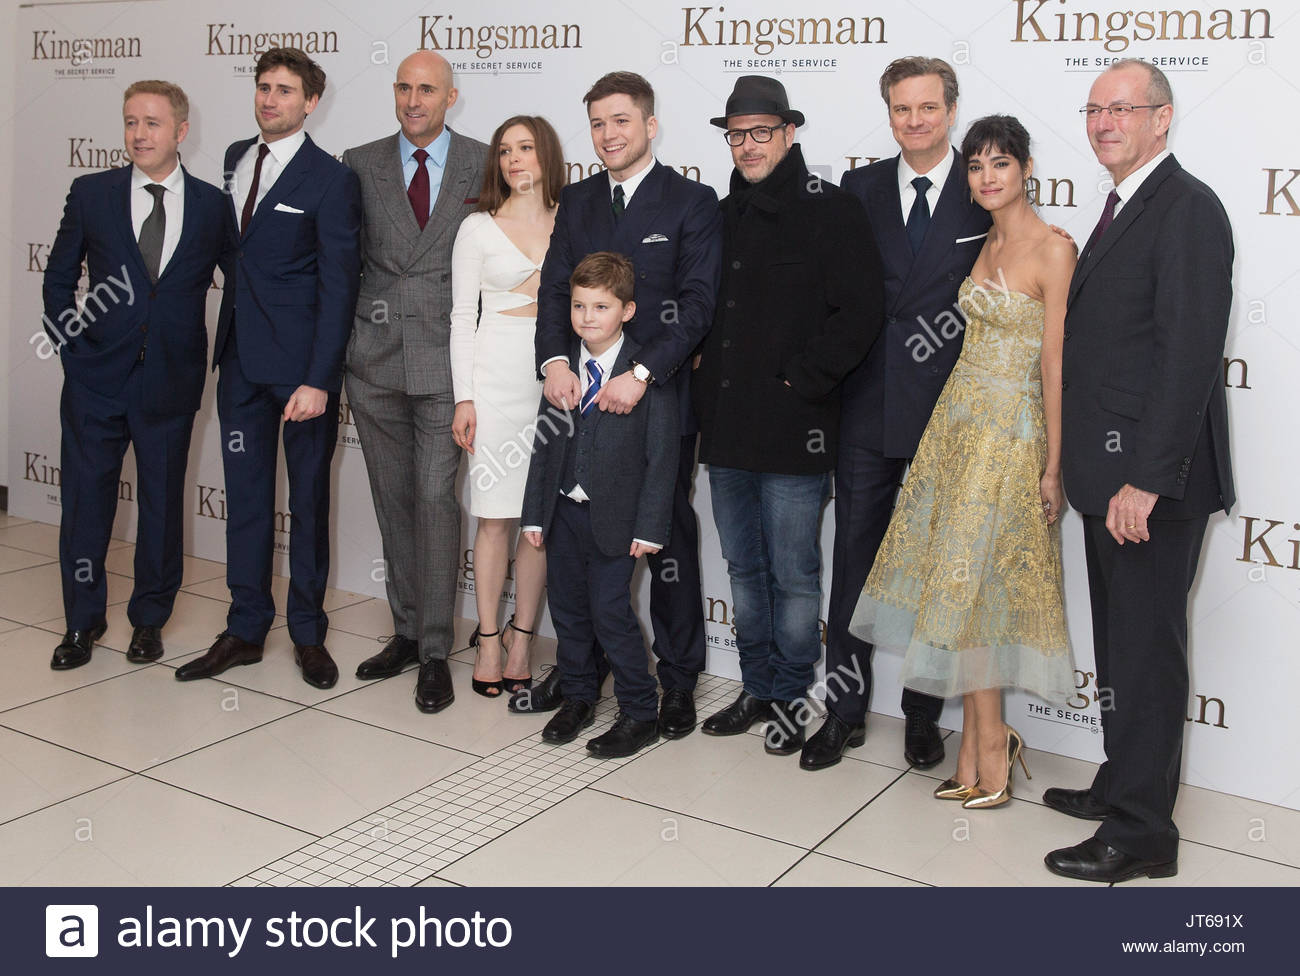 Exclusive Colin Firth Taron Egerton And Sophie Cookson: Mark Millar, Edward Holcroft, Mark Strong, Sophie Cookson